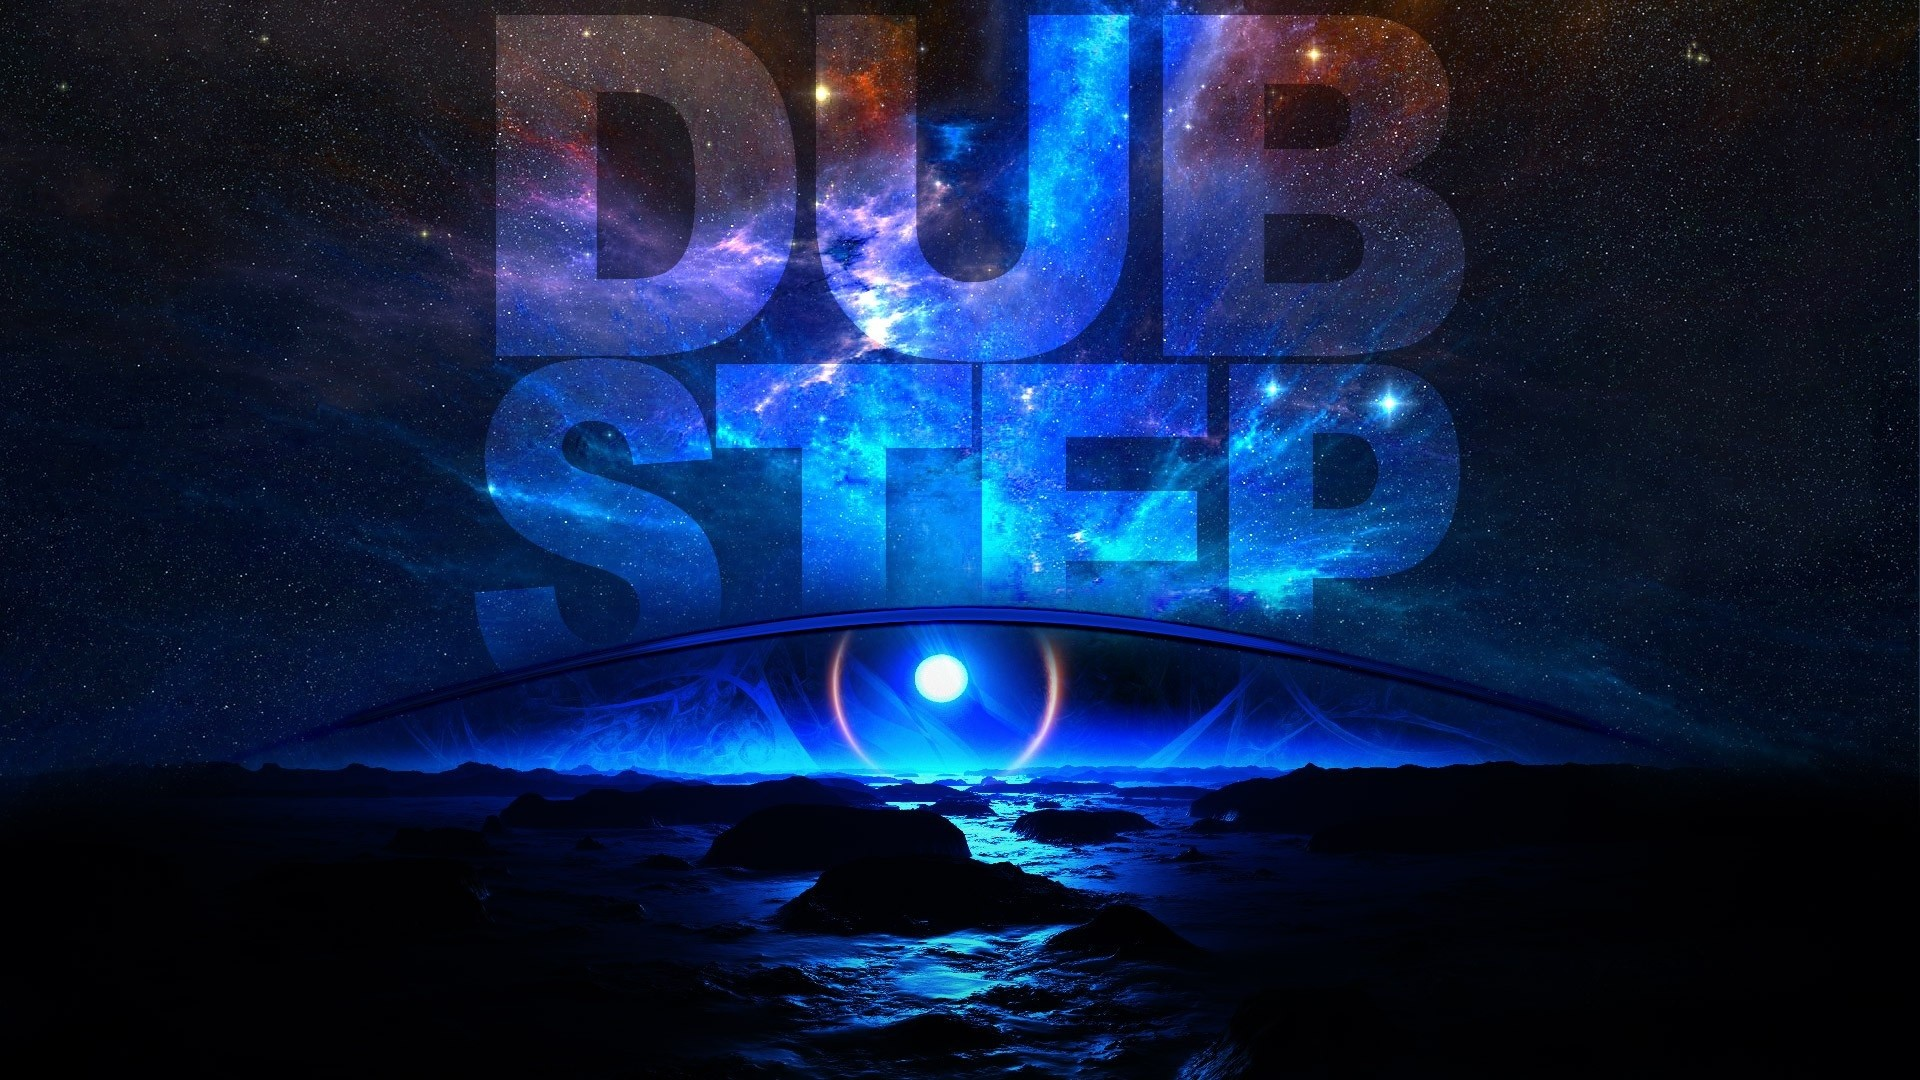 Download Dubstep Wallpapers Google Play softwares aTDItGBBwLa